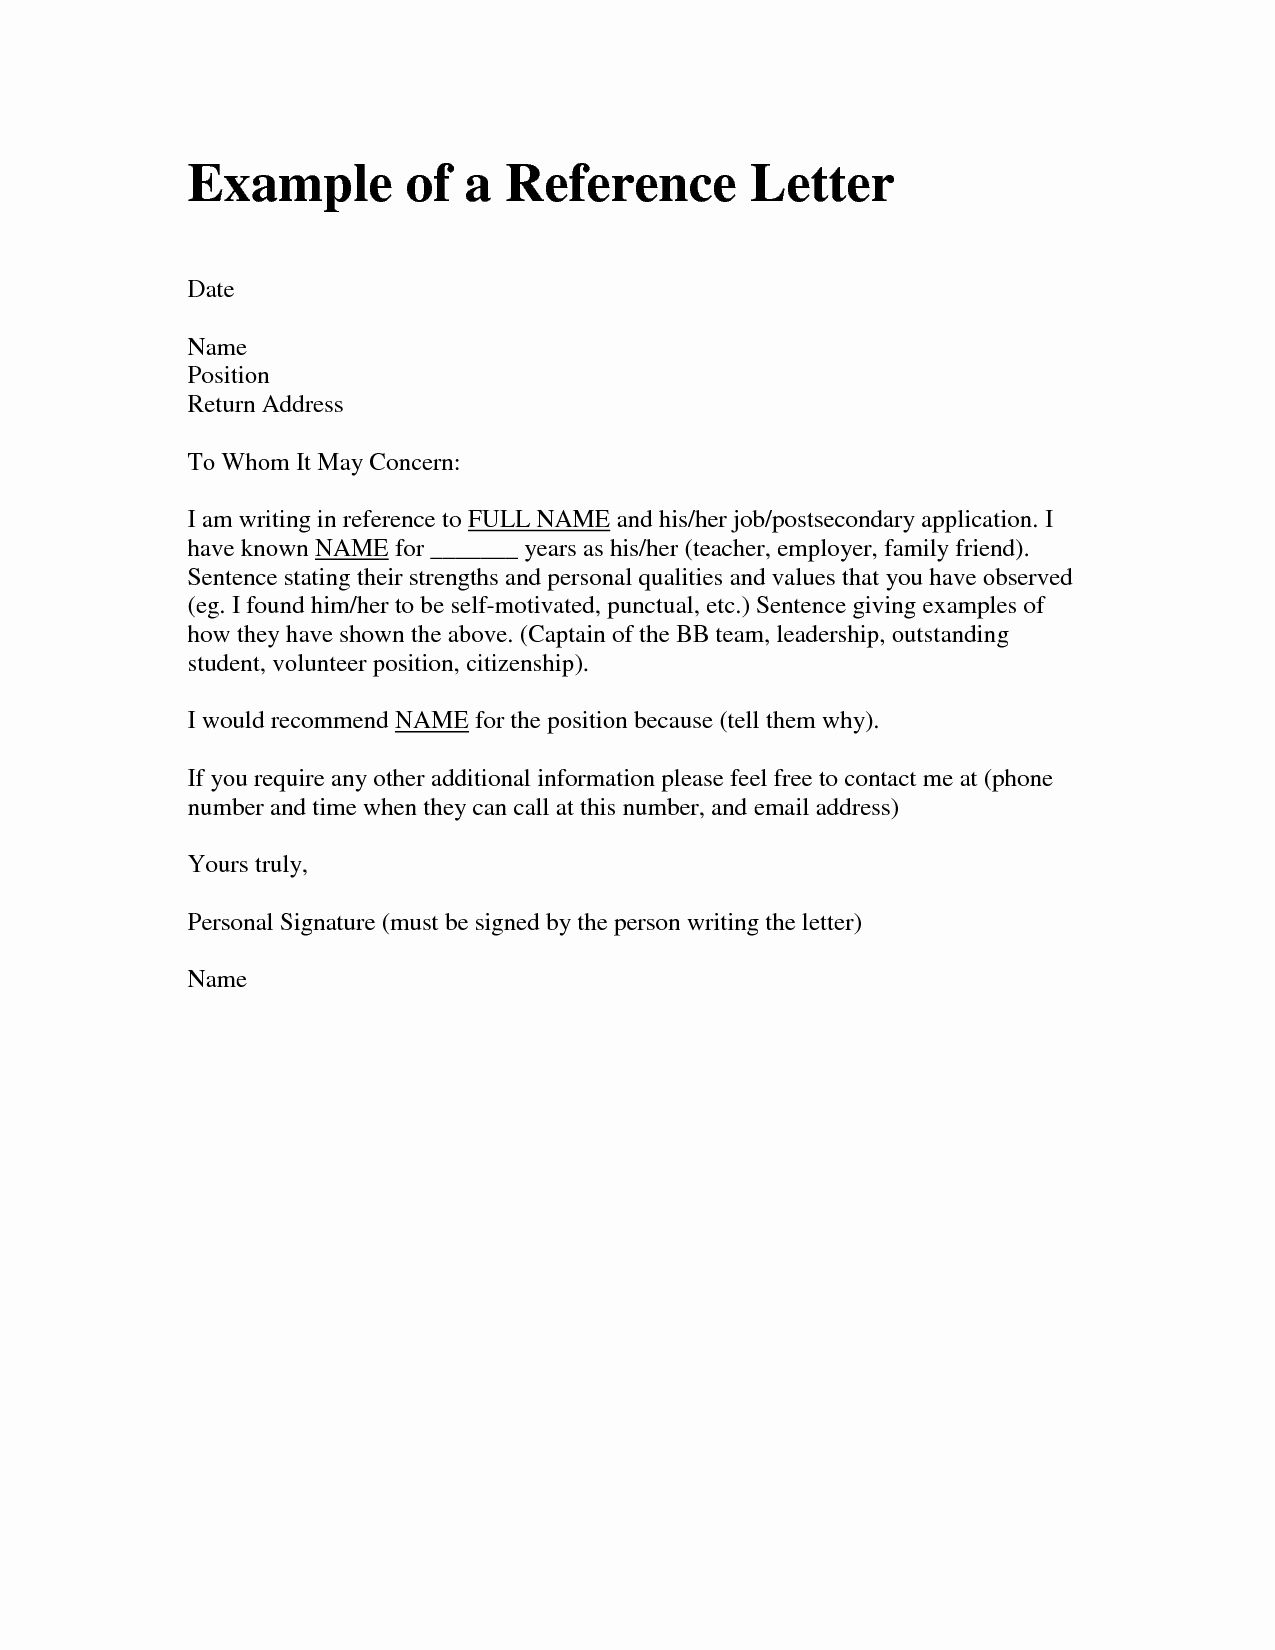 Letter Of Recommendation Template Make Certain You Set A Lot Of Thought Into Who Wil Reference Letter Template College Recommendation Letter Reference Letter